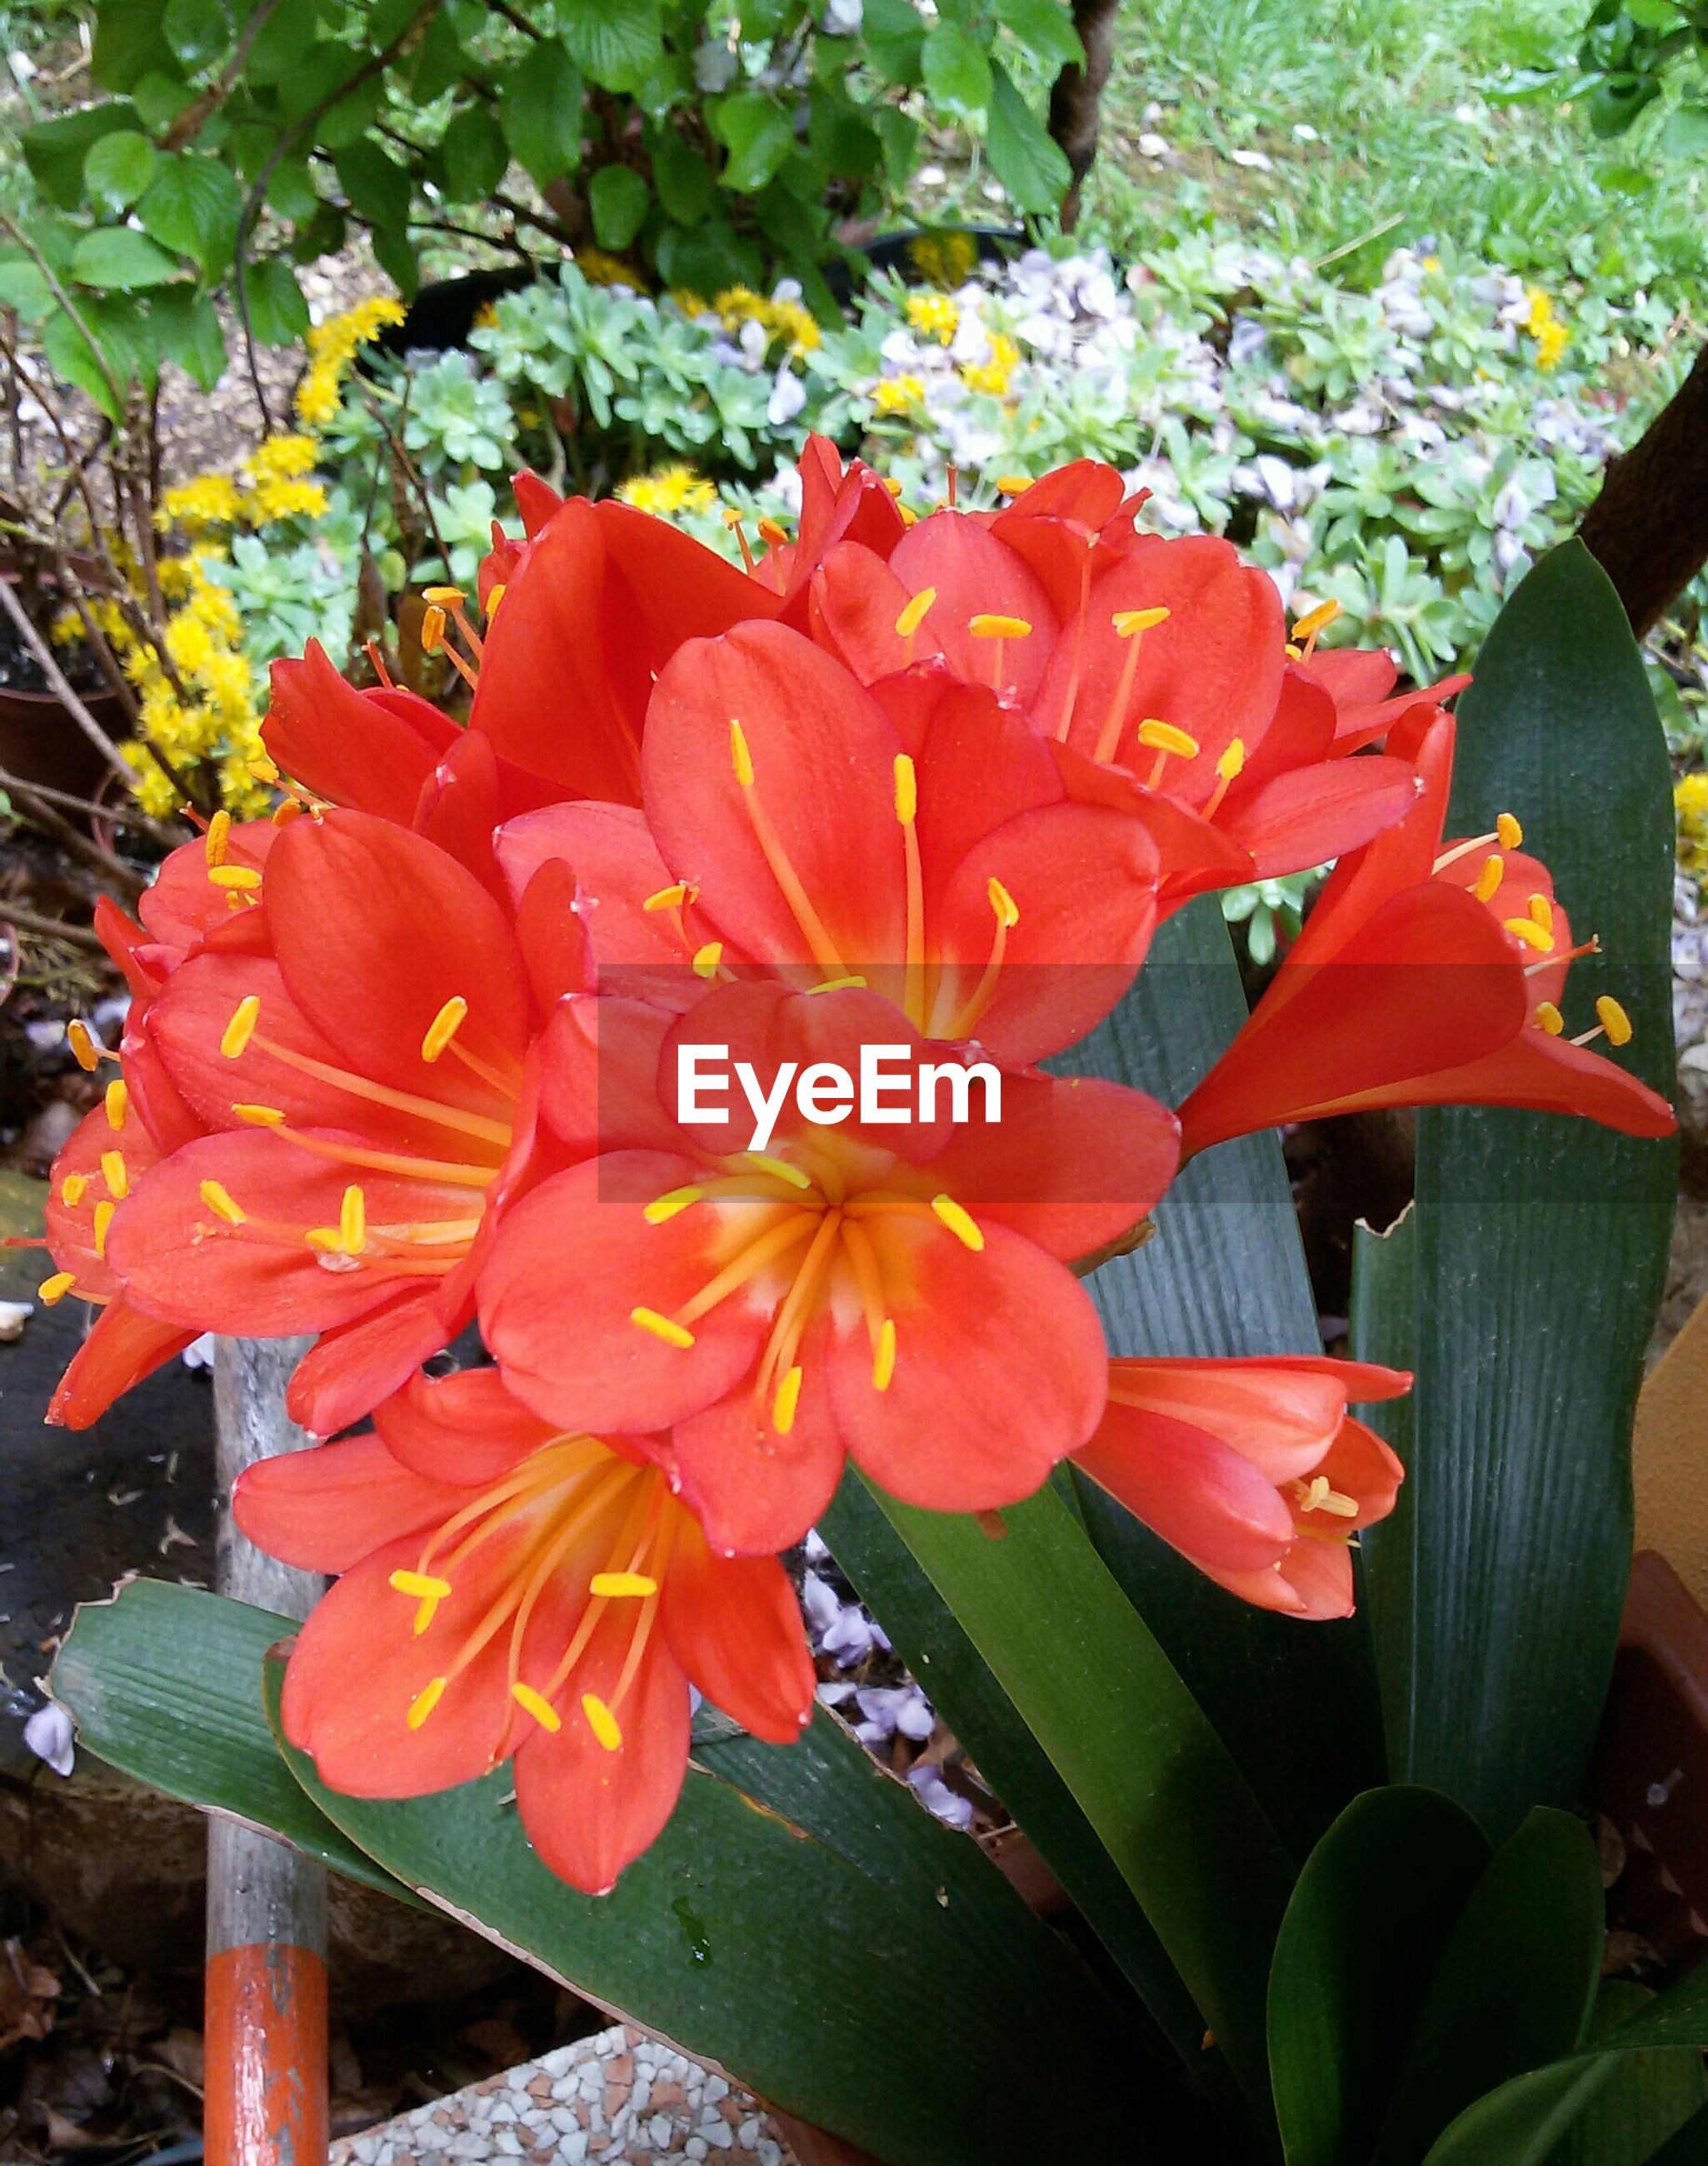 flower, petal, freshness, flower head, fragility, growth, beauty in nature, blooming, nature, plant, high angle view, leaf, close-up, park - man made space, red, in bloom, pollen, day, single flower, outdoors